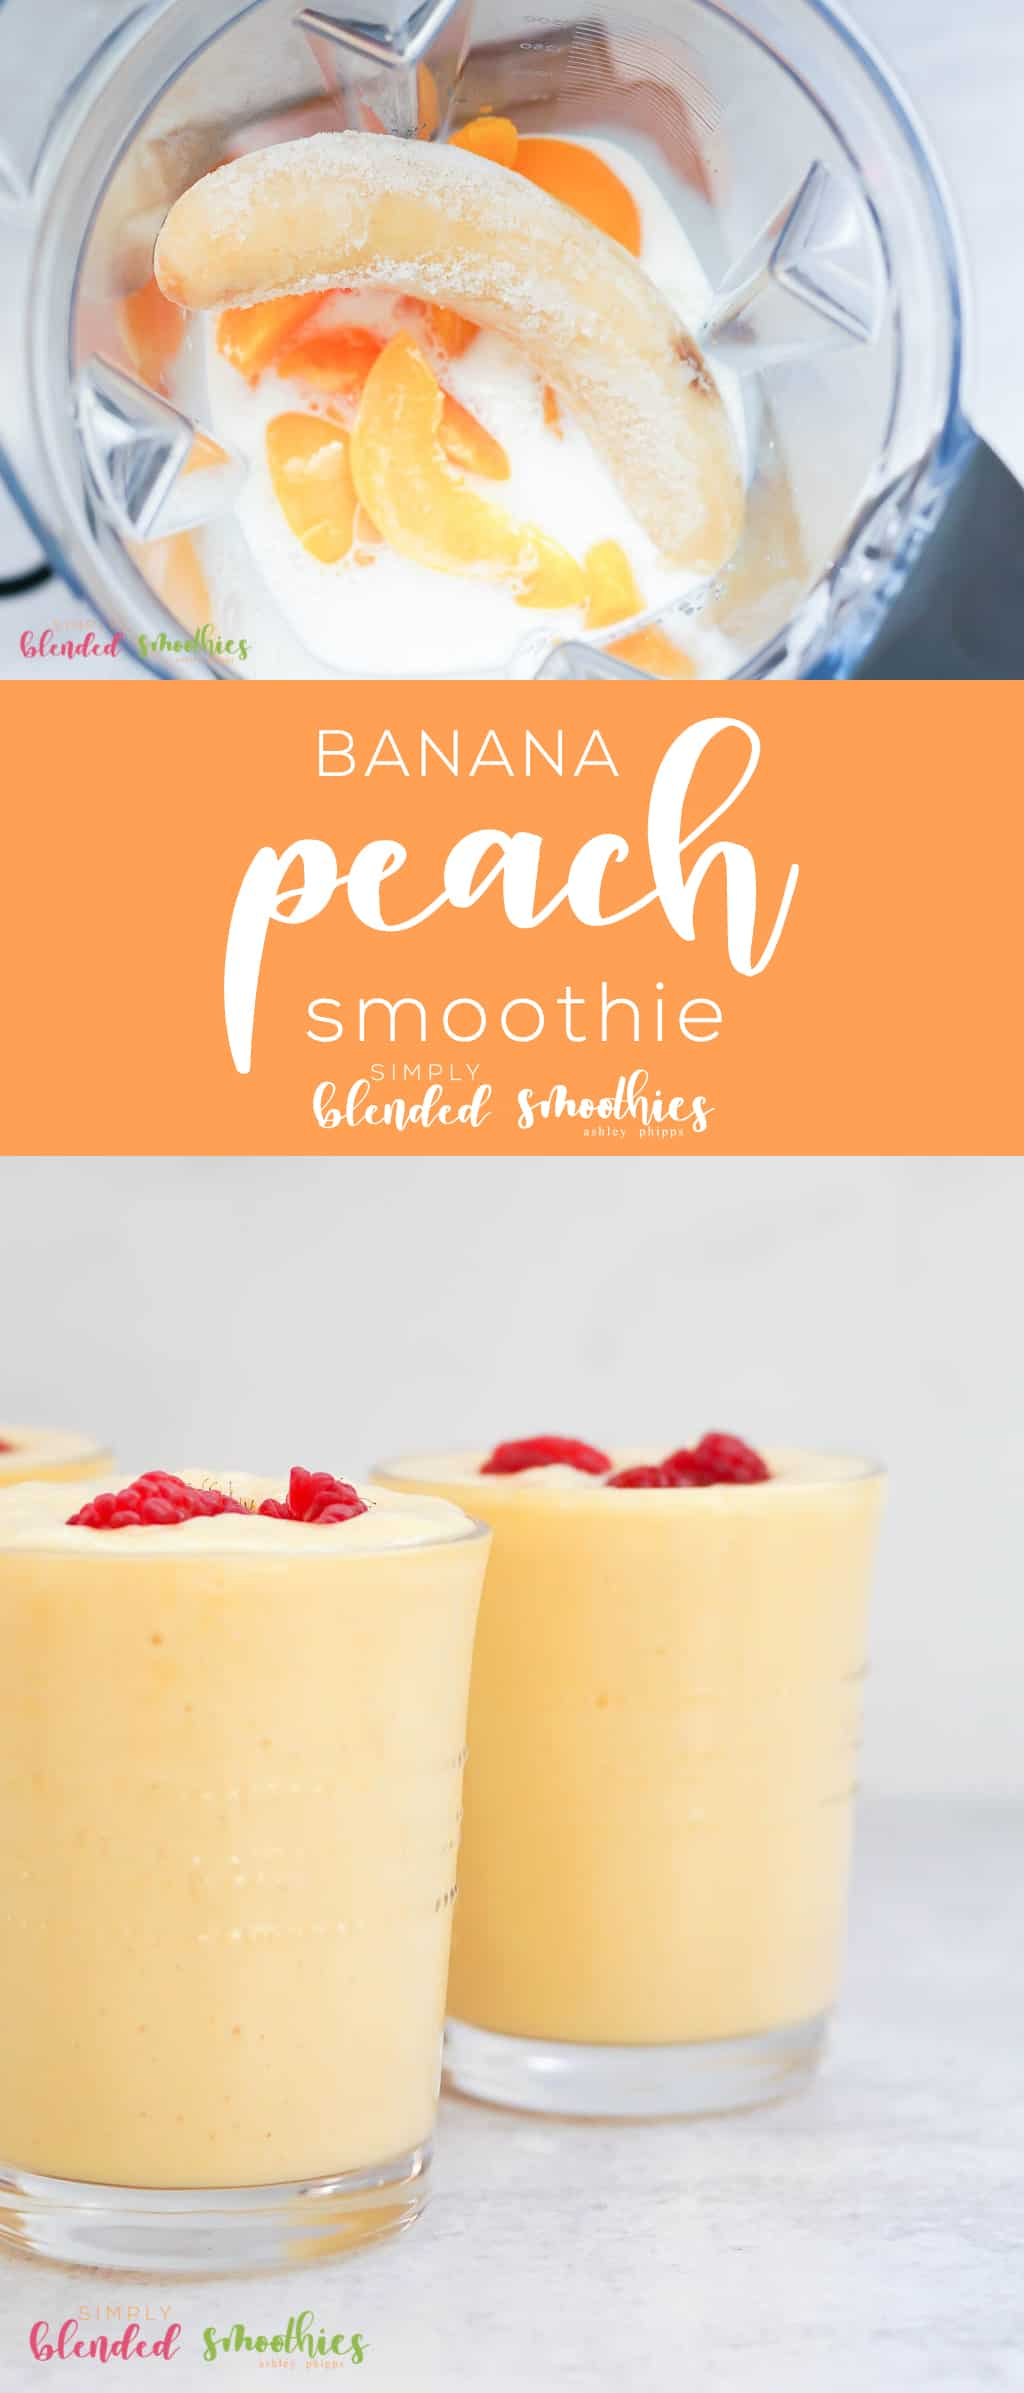 Banana Peach Smoothie made from canned fruit is still super delicious and so easy to make